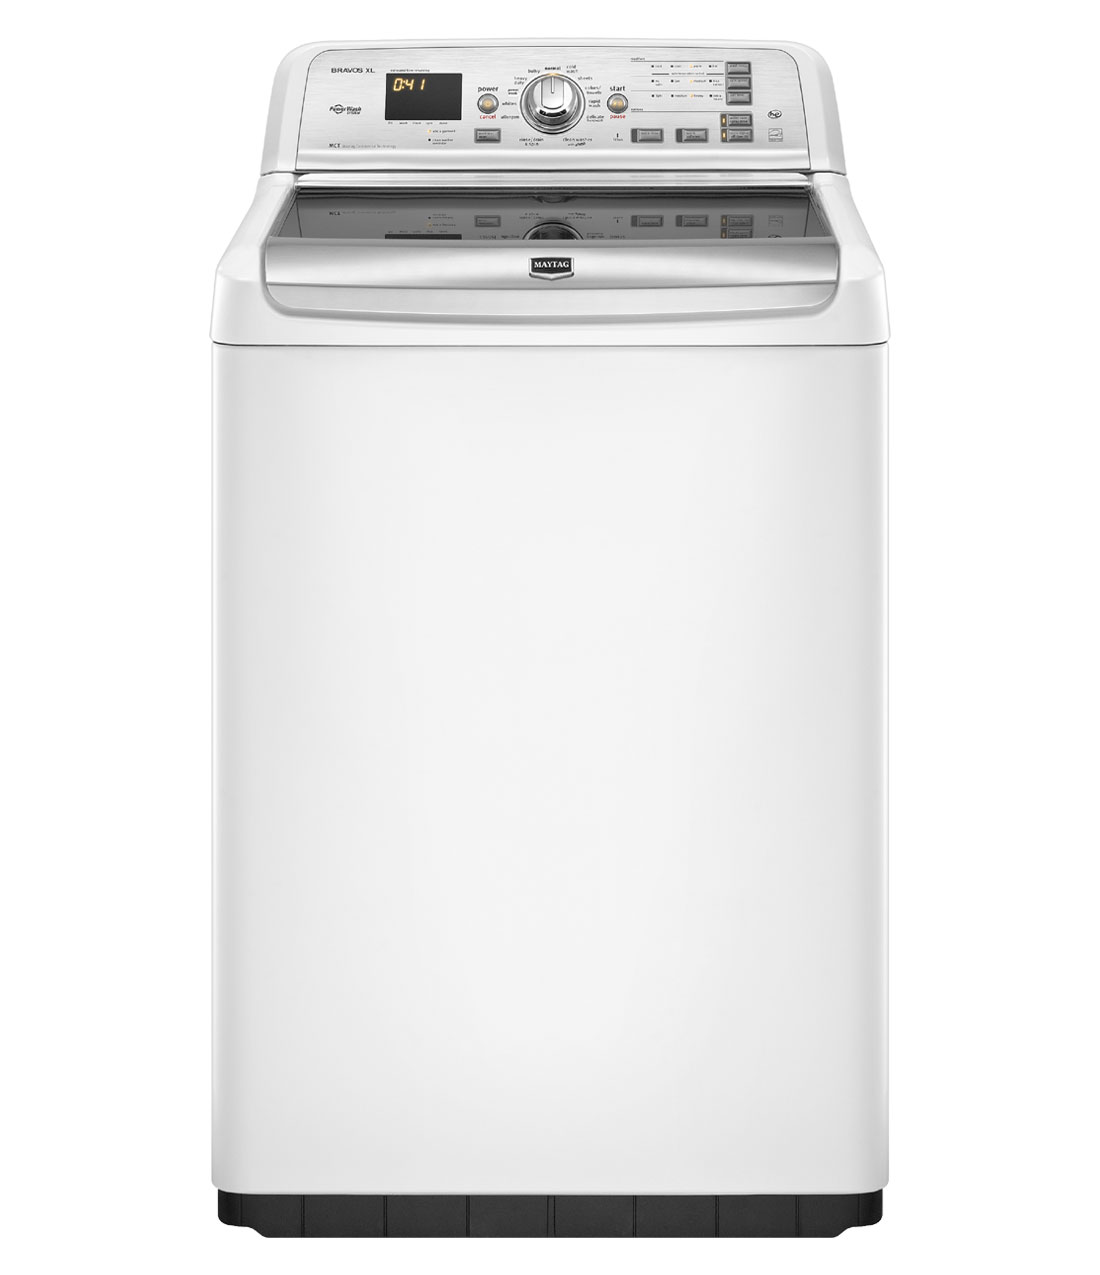 Review of Maytag Bravos XL 4.6 cu. ft. High-Efficiency Top Load Washer in White (Model: MVWB850YW)